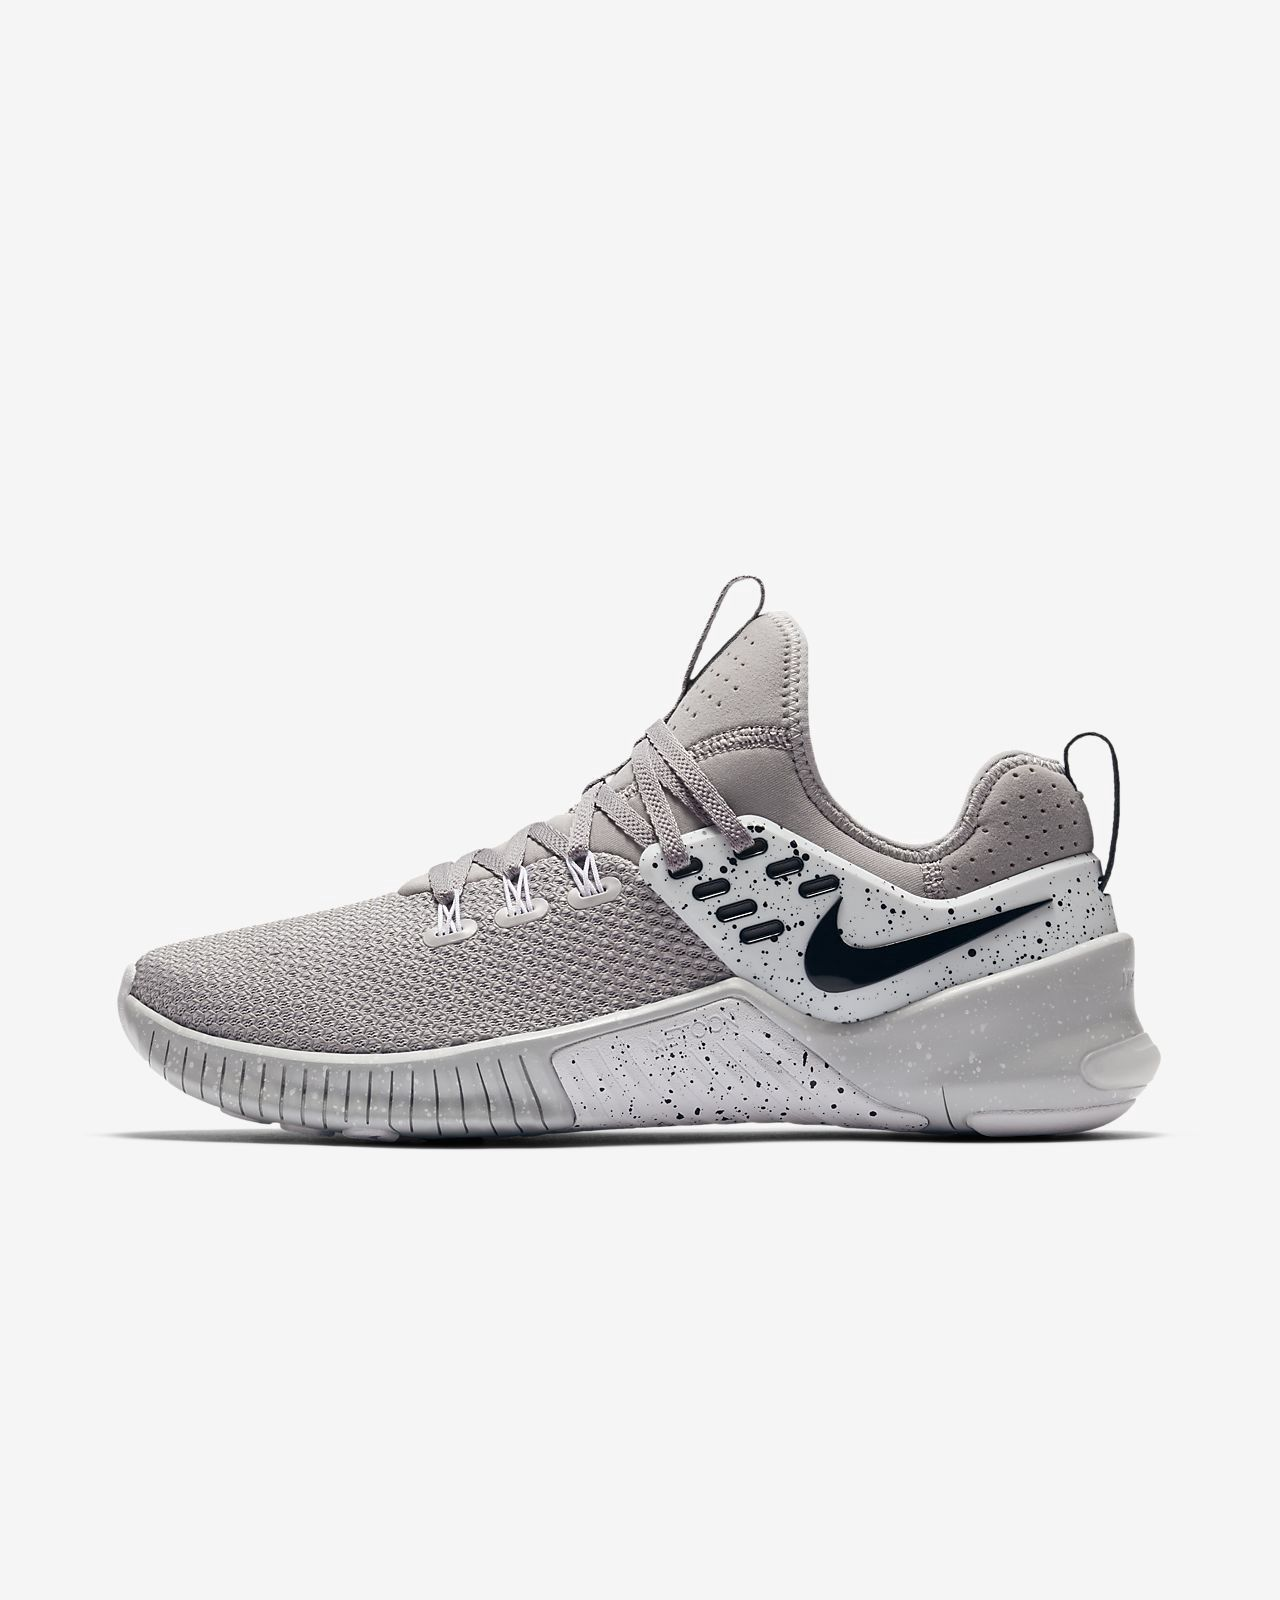 f7460857efa5 Nike Free X Metcon Gym Cross Training Shoe - M 8.5   W 10